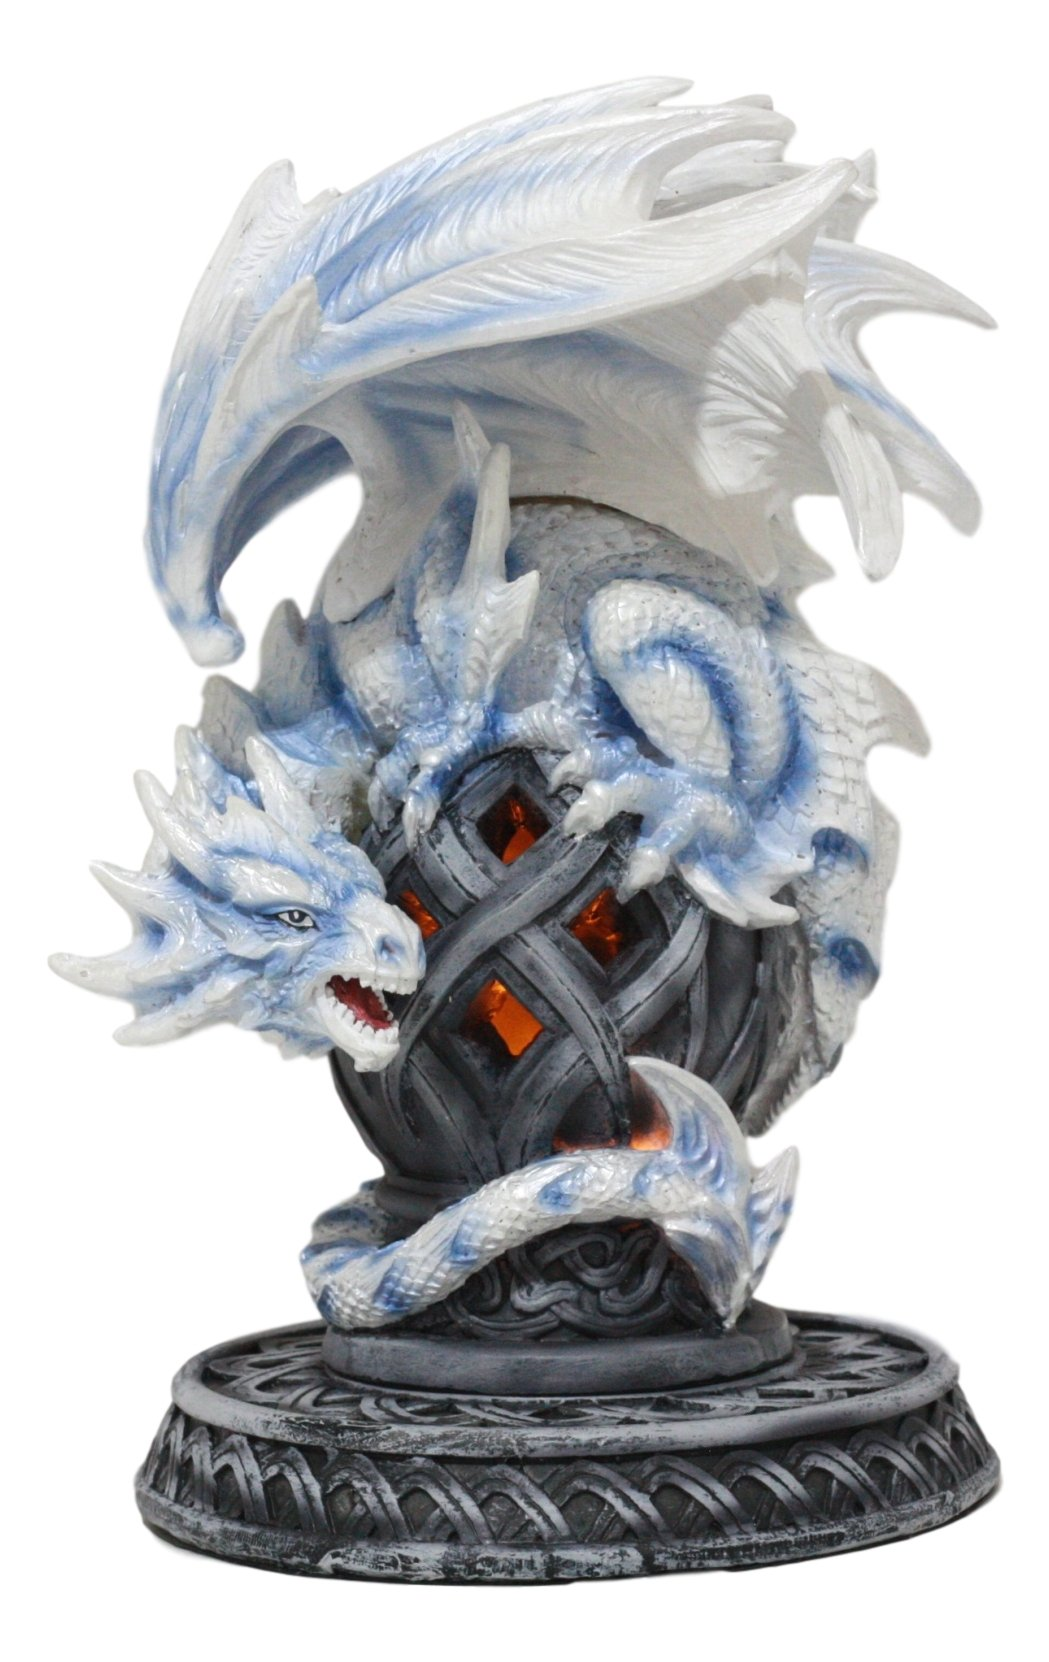 Ebros Guardian of Celtic Tomb White Icycle Dragon Backflow Cone Incense Holder Statue 8.5''Tall Fantasy Icelandic Dragon LED Tea Light Candle Holder Figurine